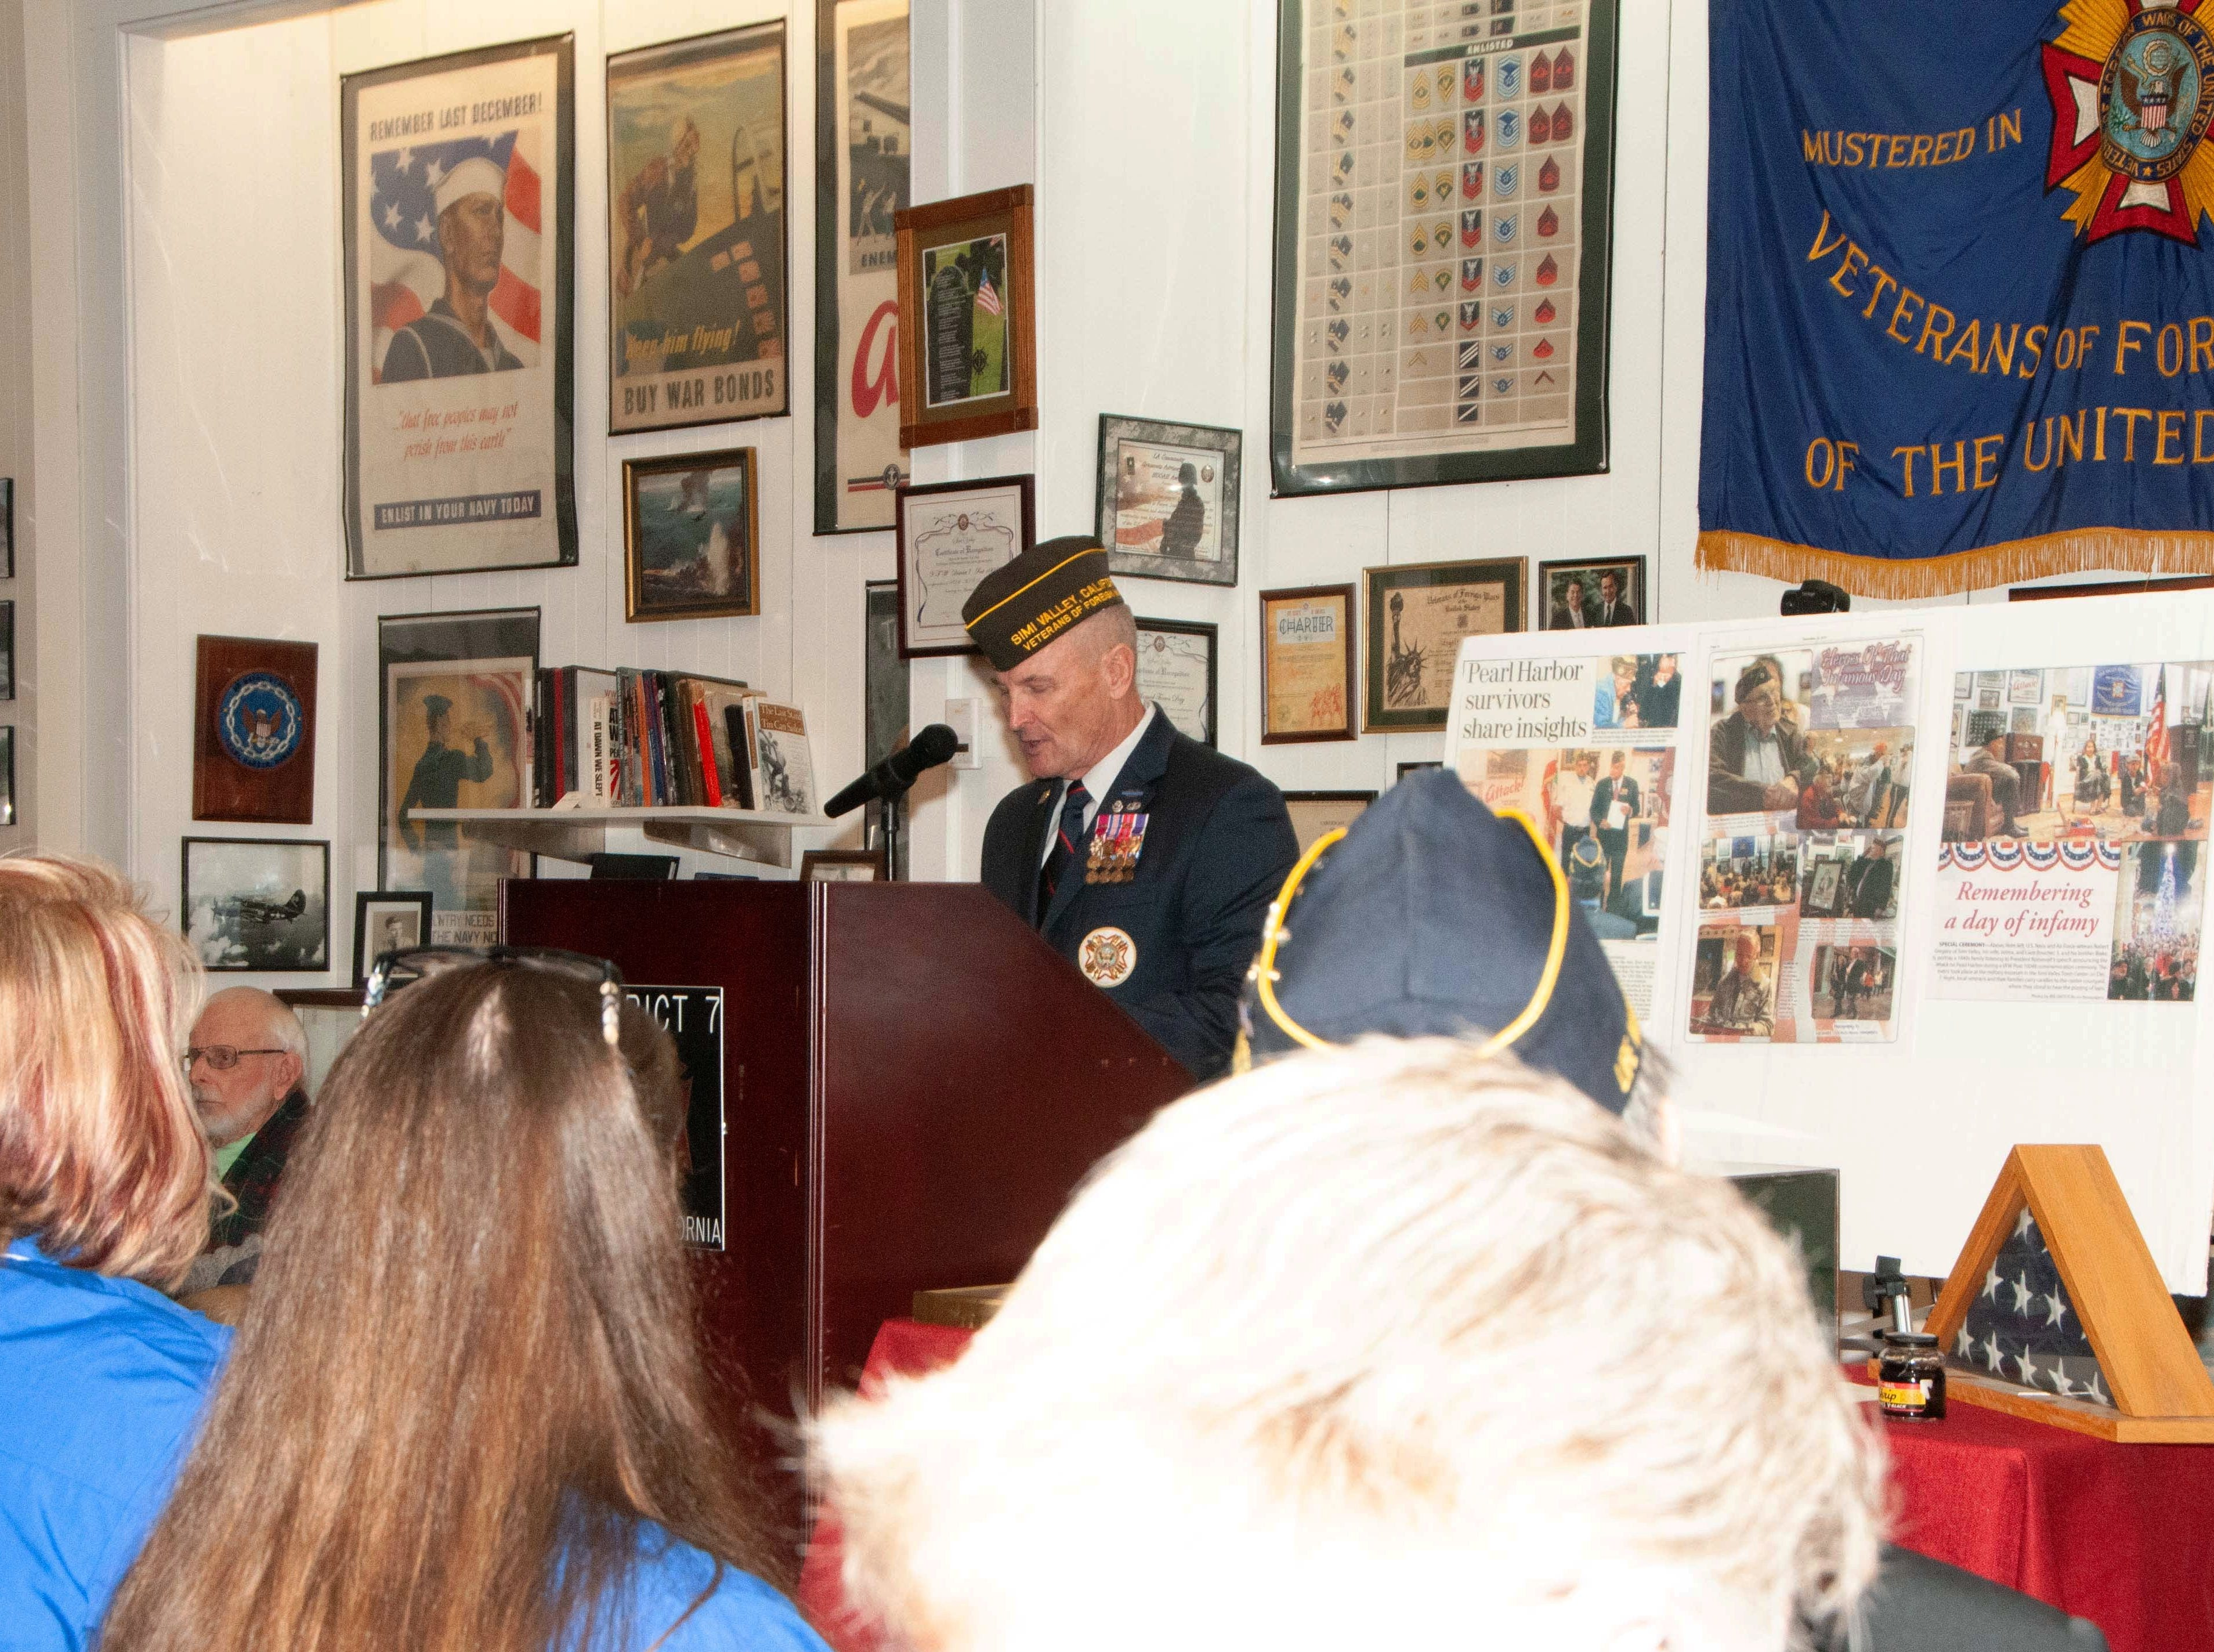 Retired U.S. Army Lt. Col. Martin Spann was the emcee during a commemoration of the 77th anniversary of the attack at Pearl Harbor, Hawaii. The event took place at the VFW Museum of Military History in Simi Valley on Dec. 7.